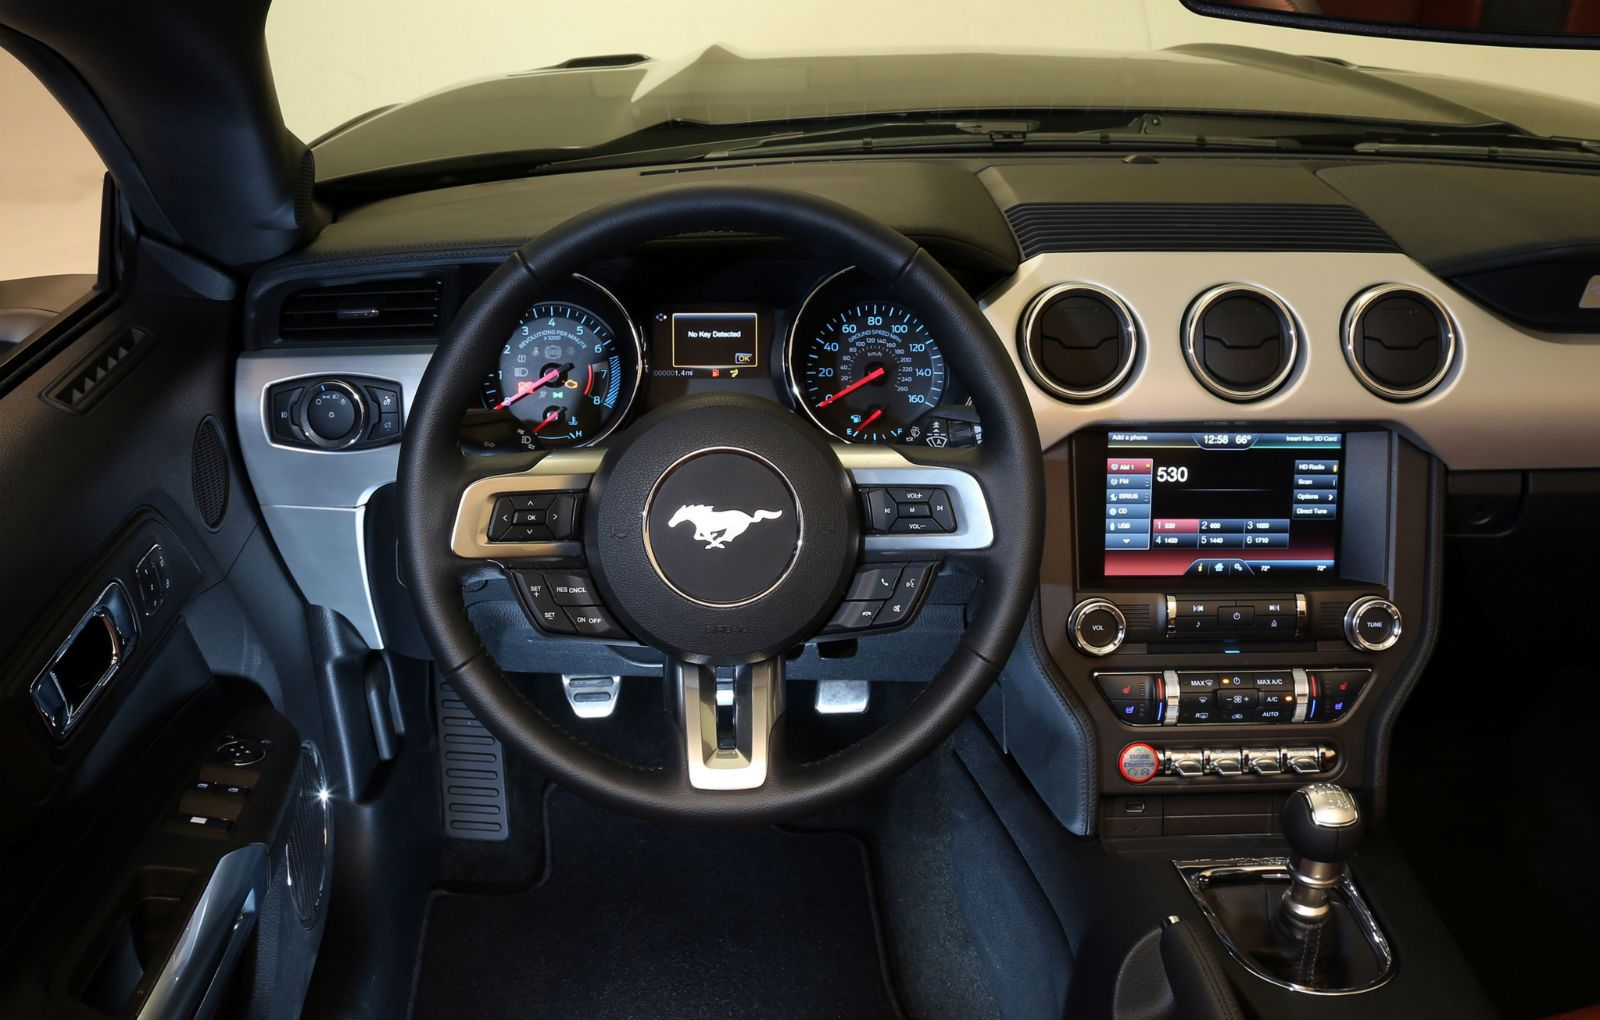 2016 ford mustang interior wappercar fordmustang interiorcar 2016fordmustang. Black Bedroom Furniture Sets. Home Design Ideas